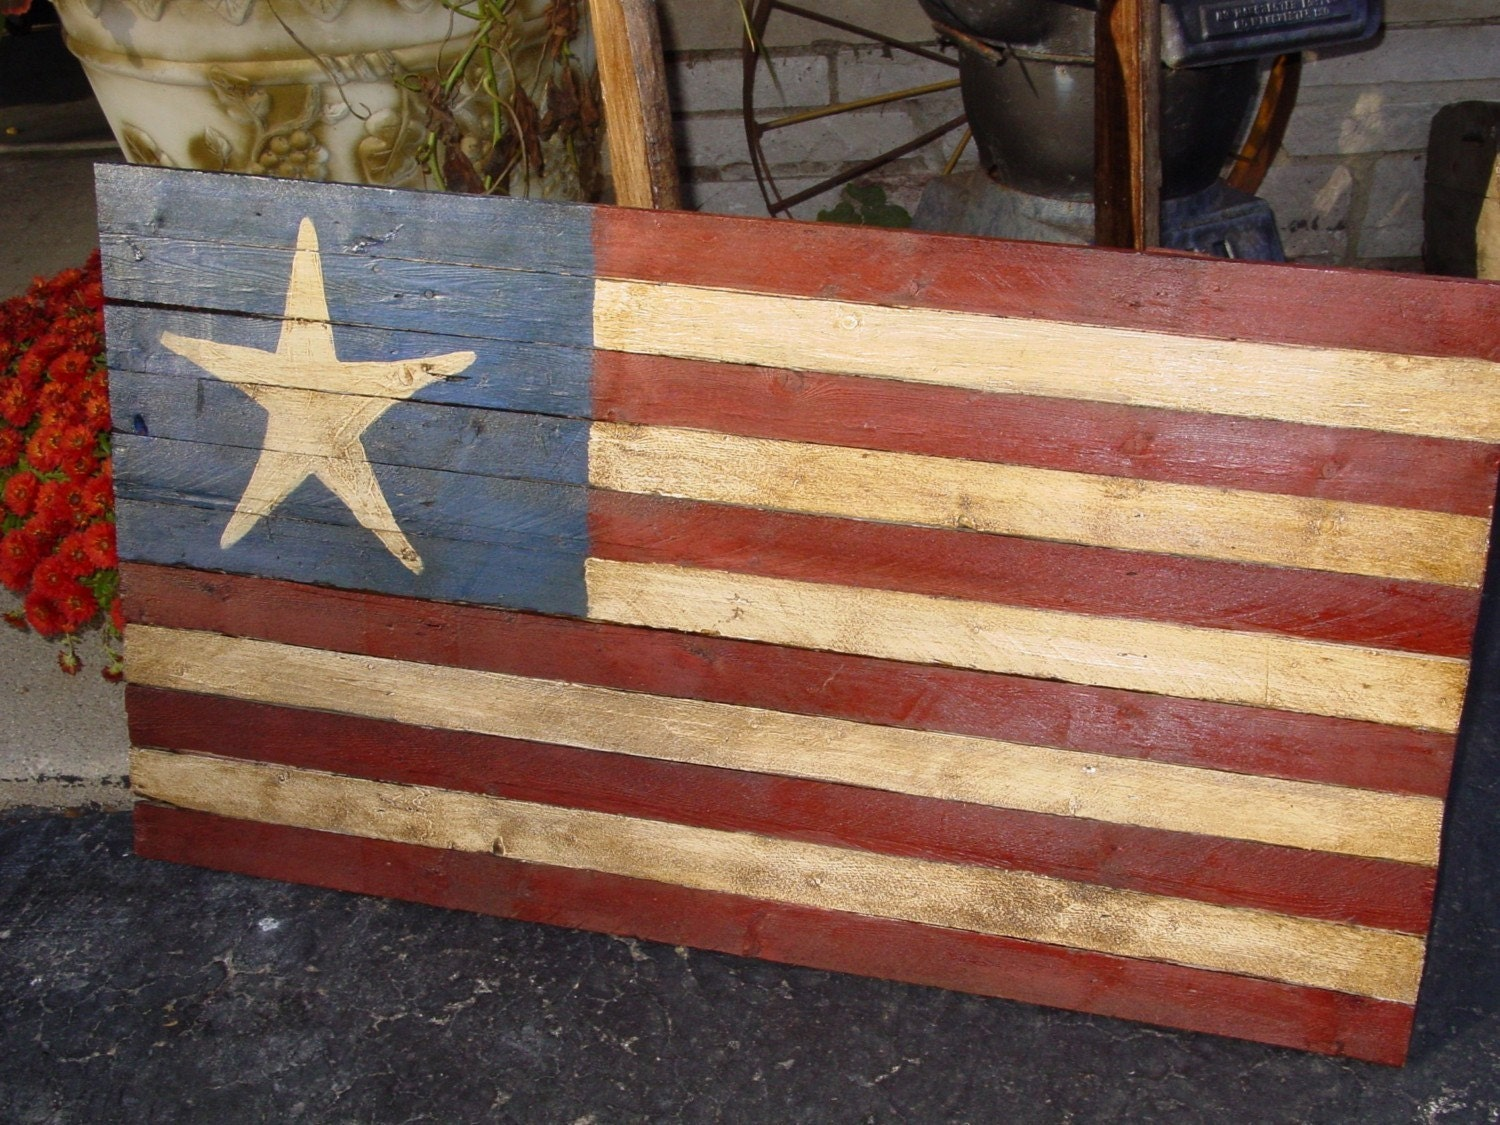 Rustic Star Country Decor Folk Art American Flag Wood 33 X 18